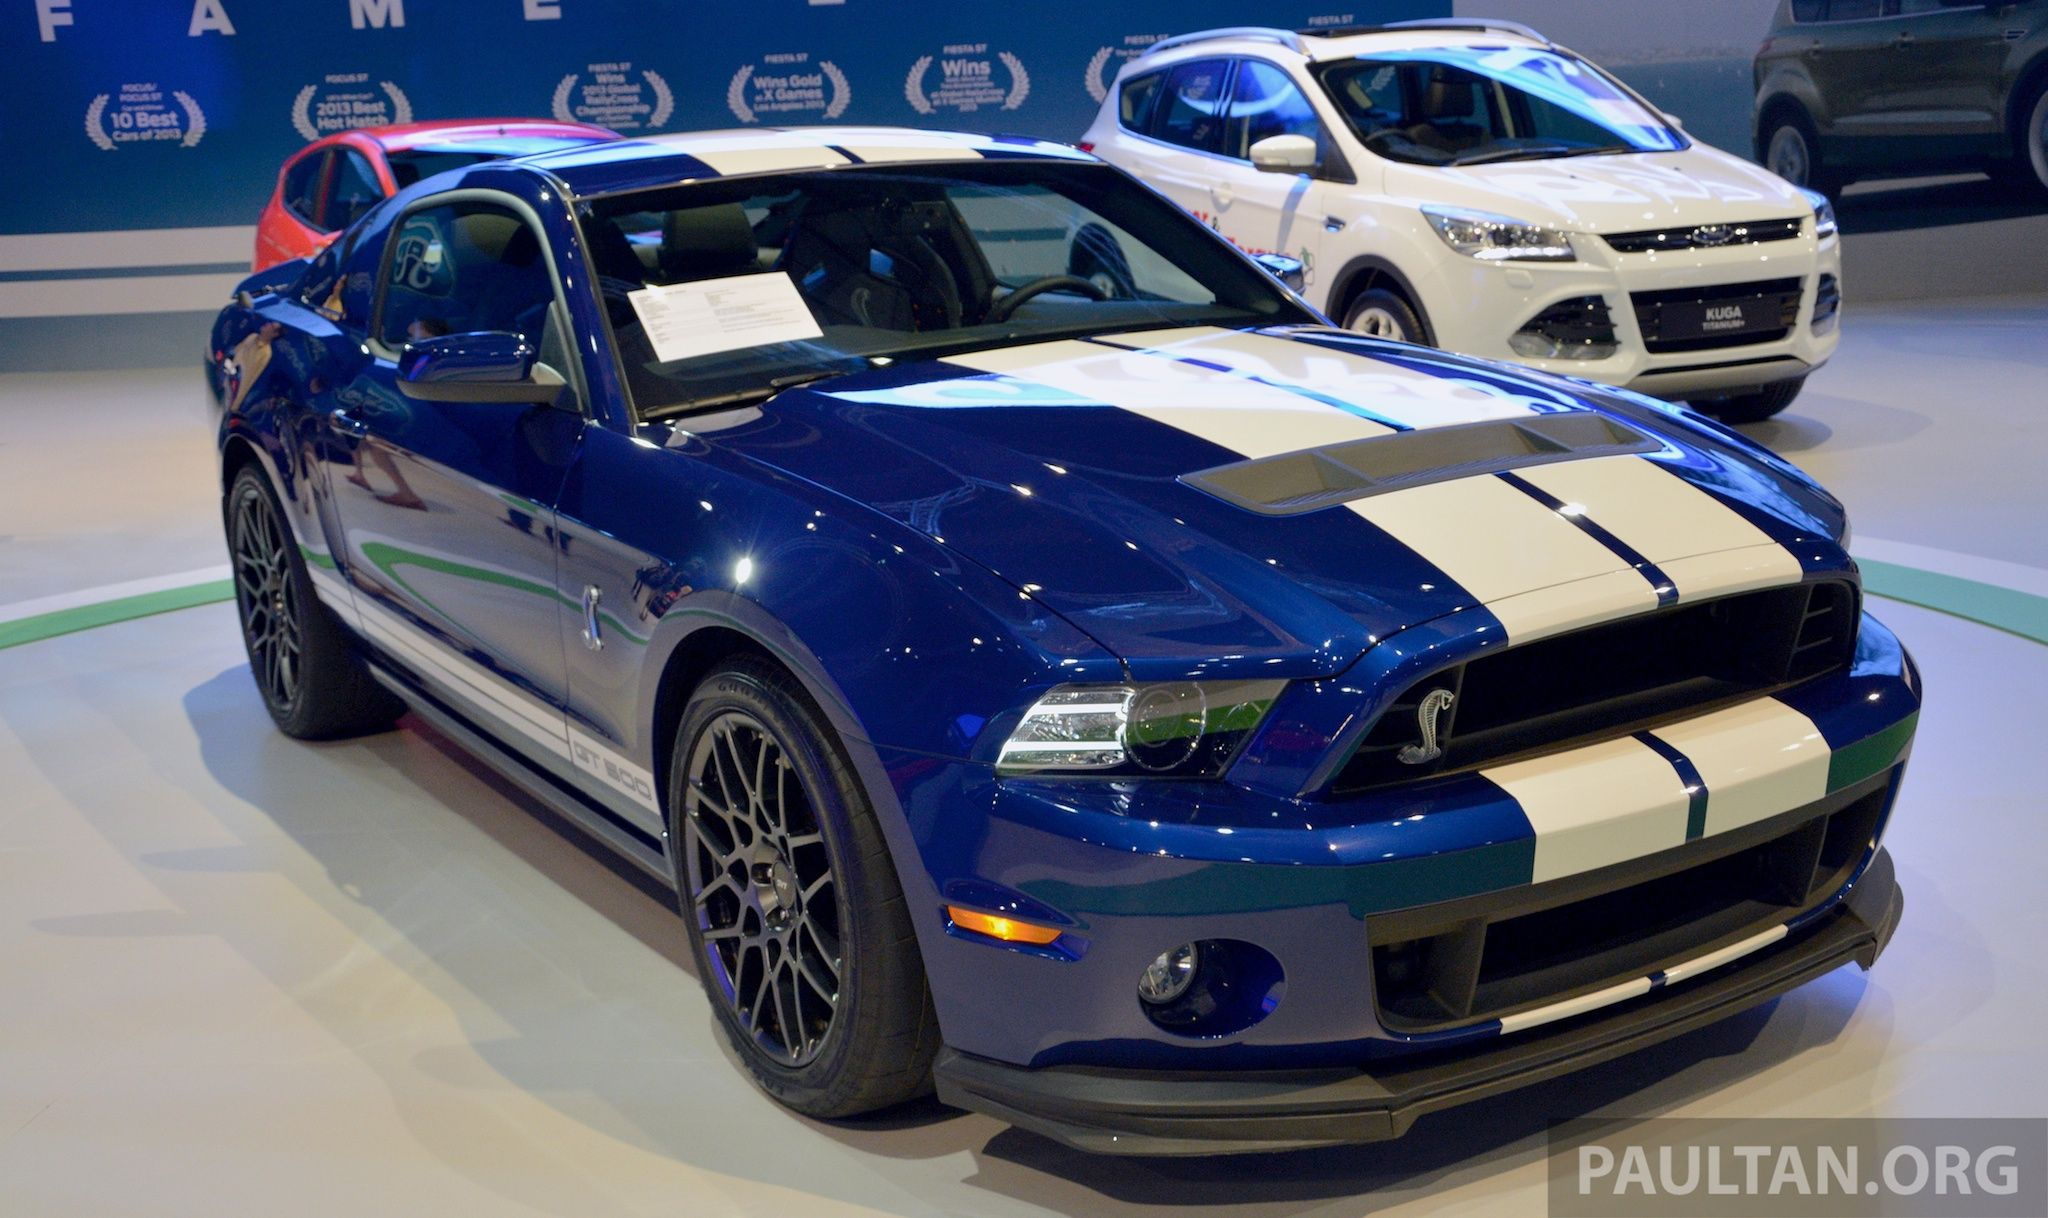 Ford-Mustang-Shelby-GT500-KLIMS-2.jpg 2,048×1,218 pixels | vehicle ...